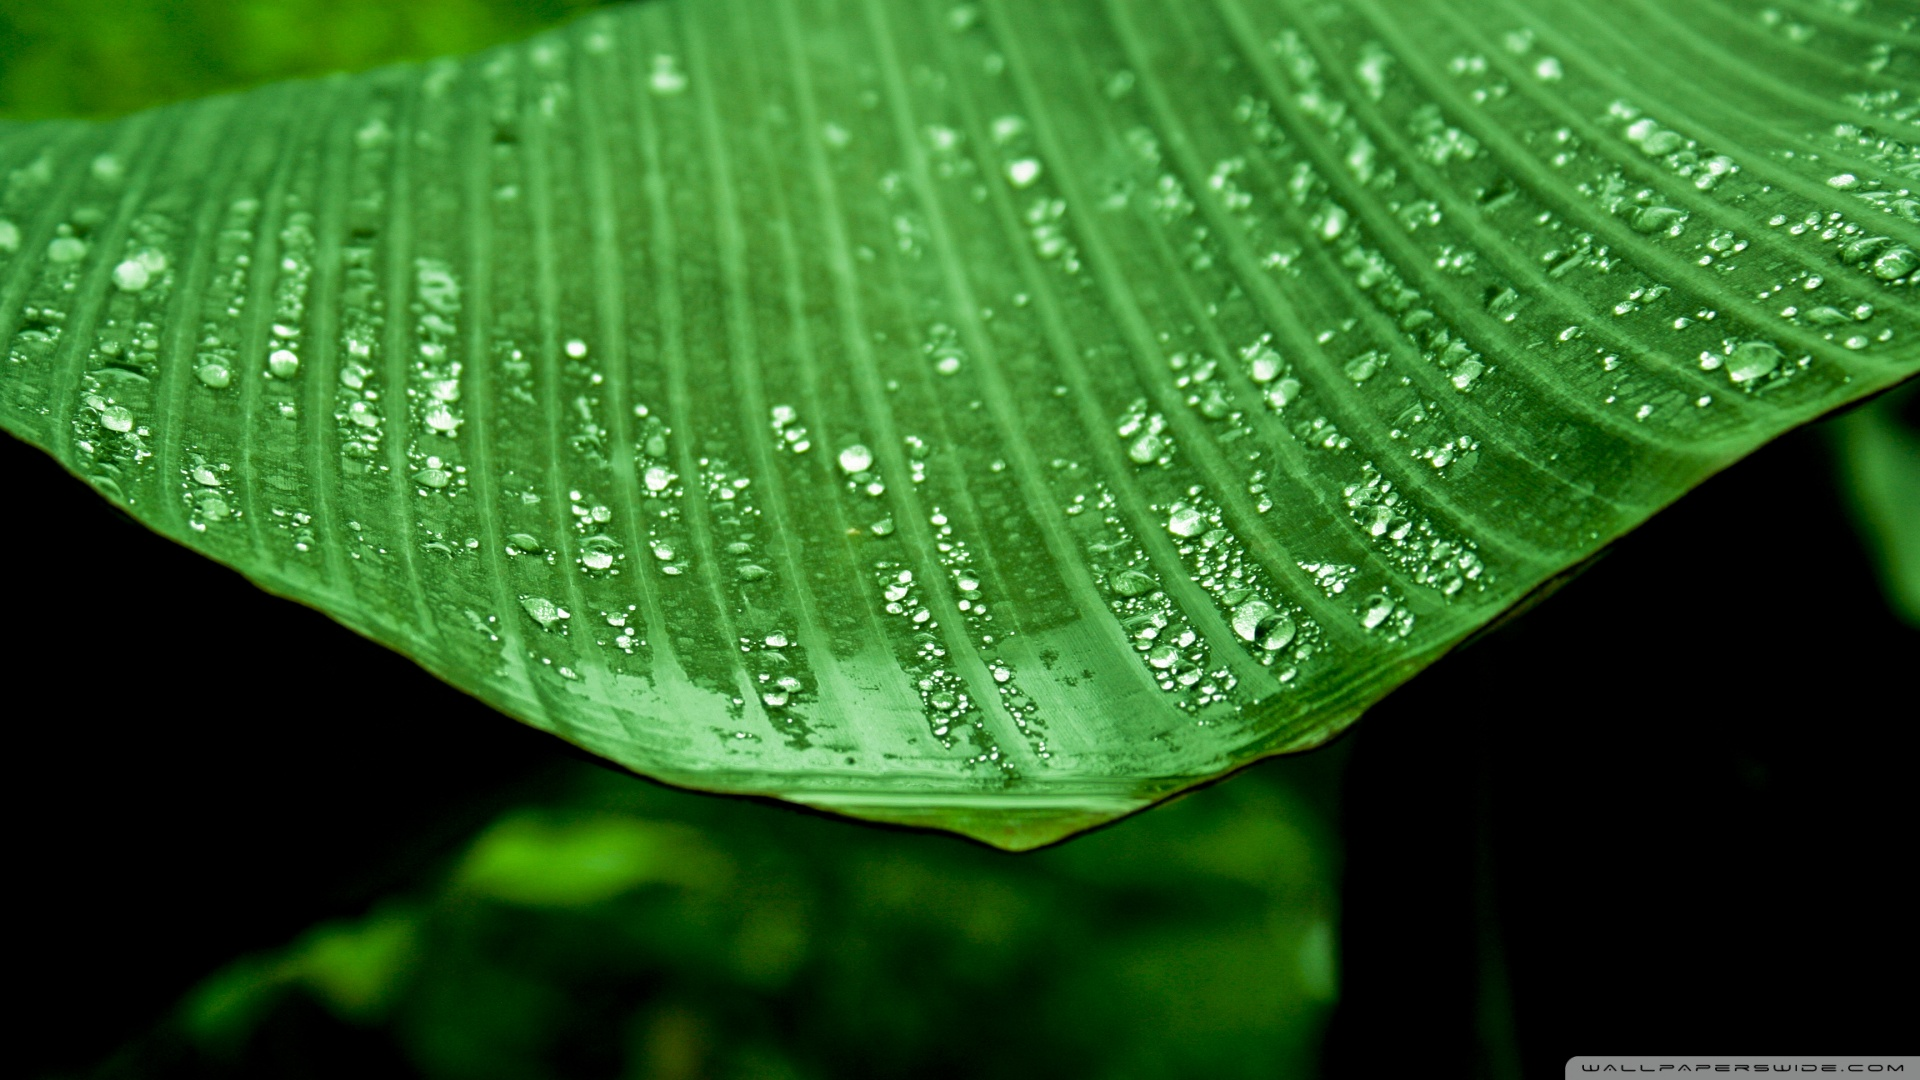 Wet Banana Tree Leaf Wallpaper 1920x1080 Wet Banana Tree Leaf 1920x1080